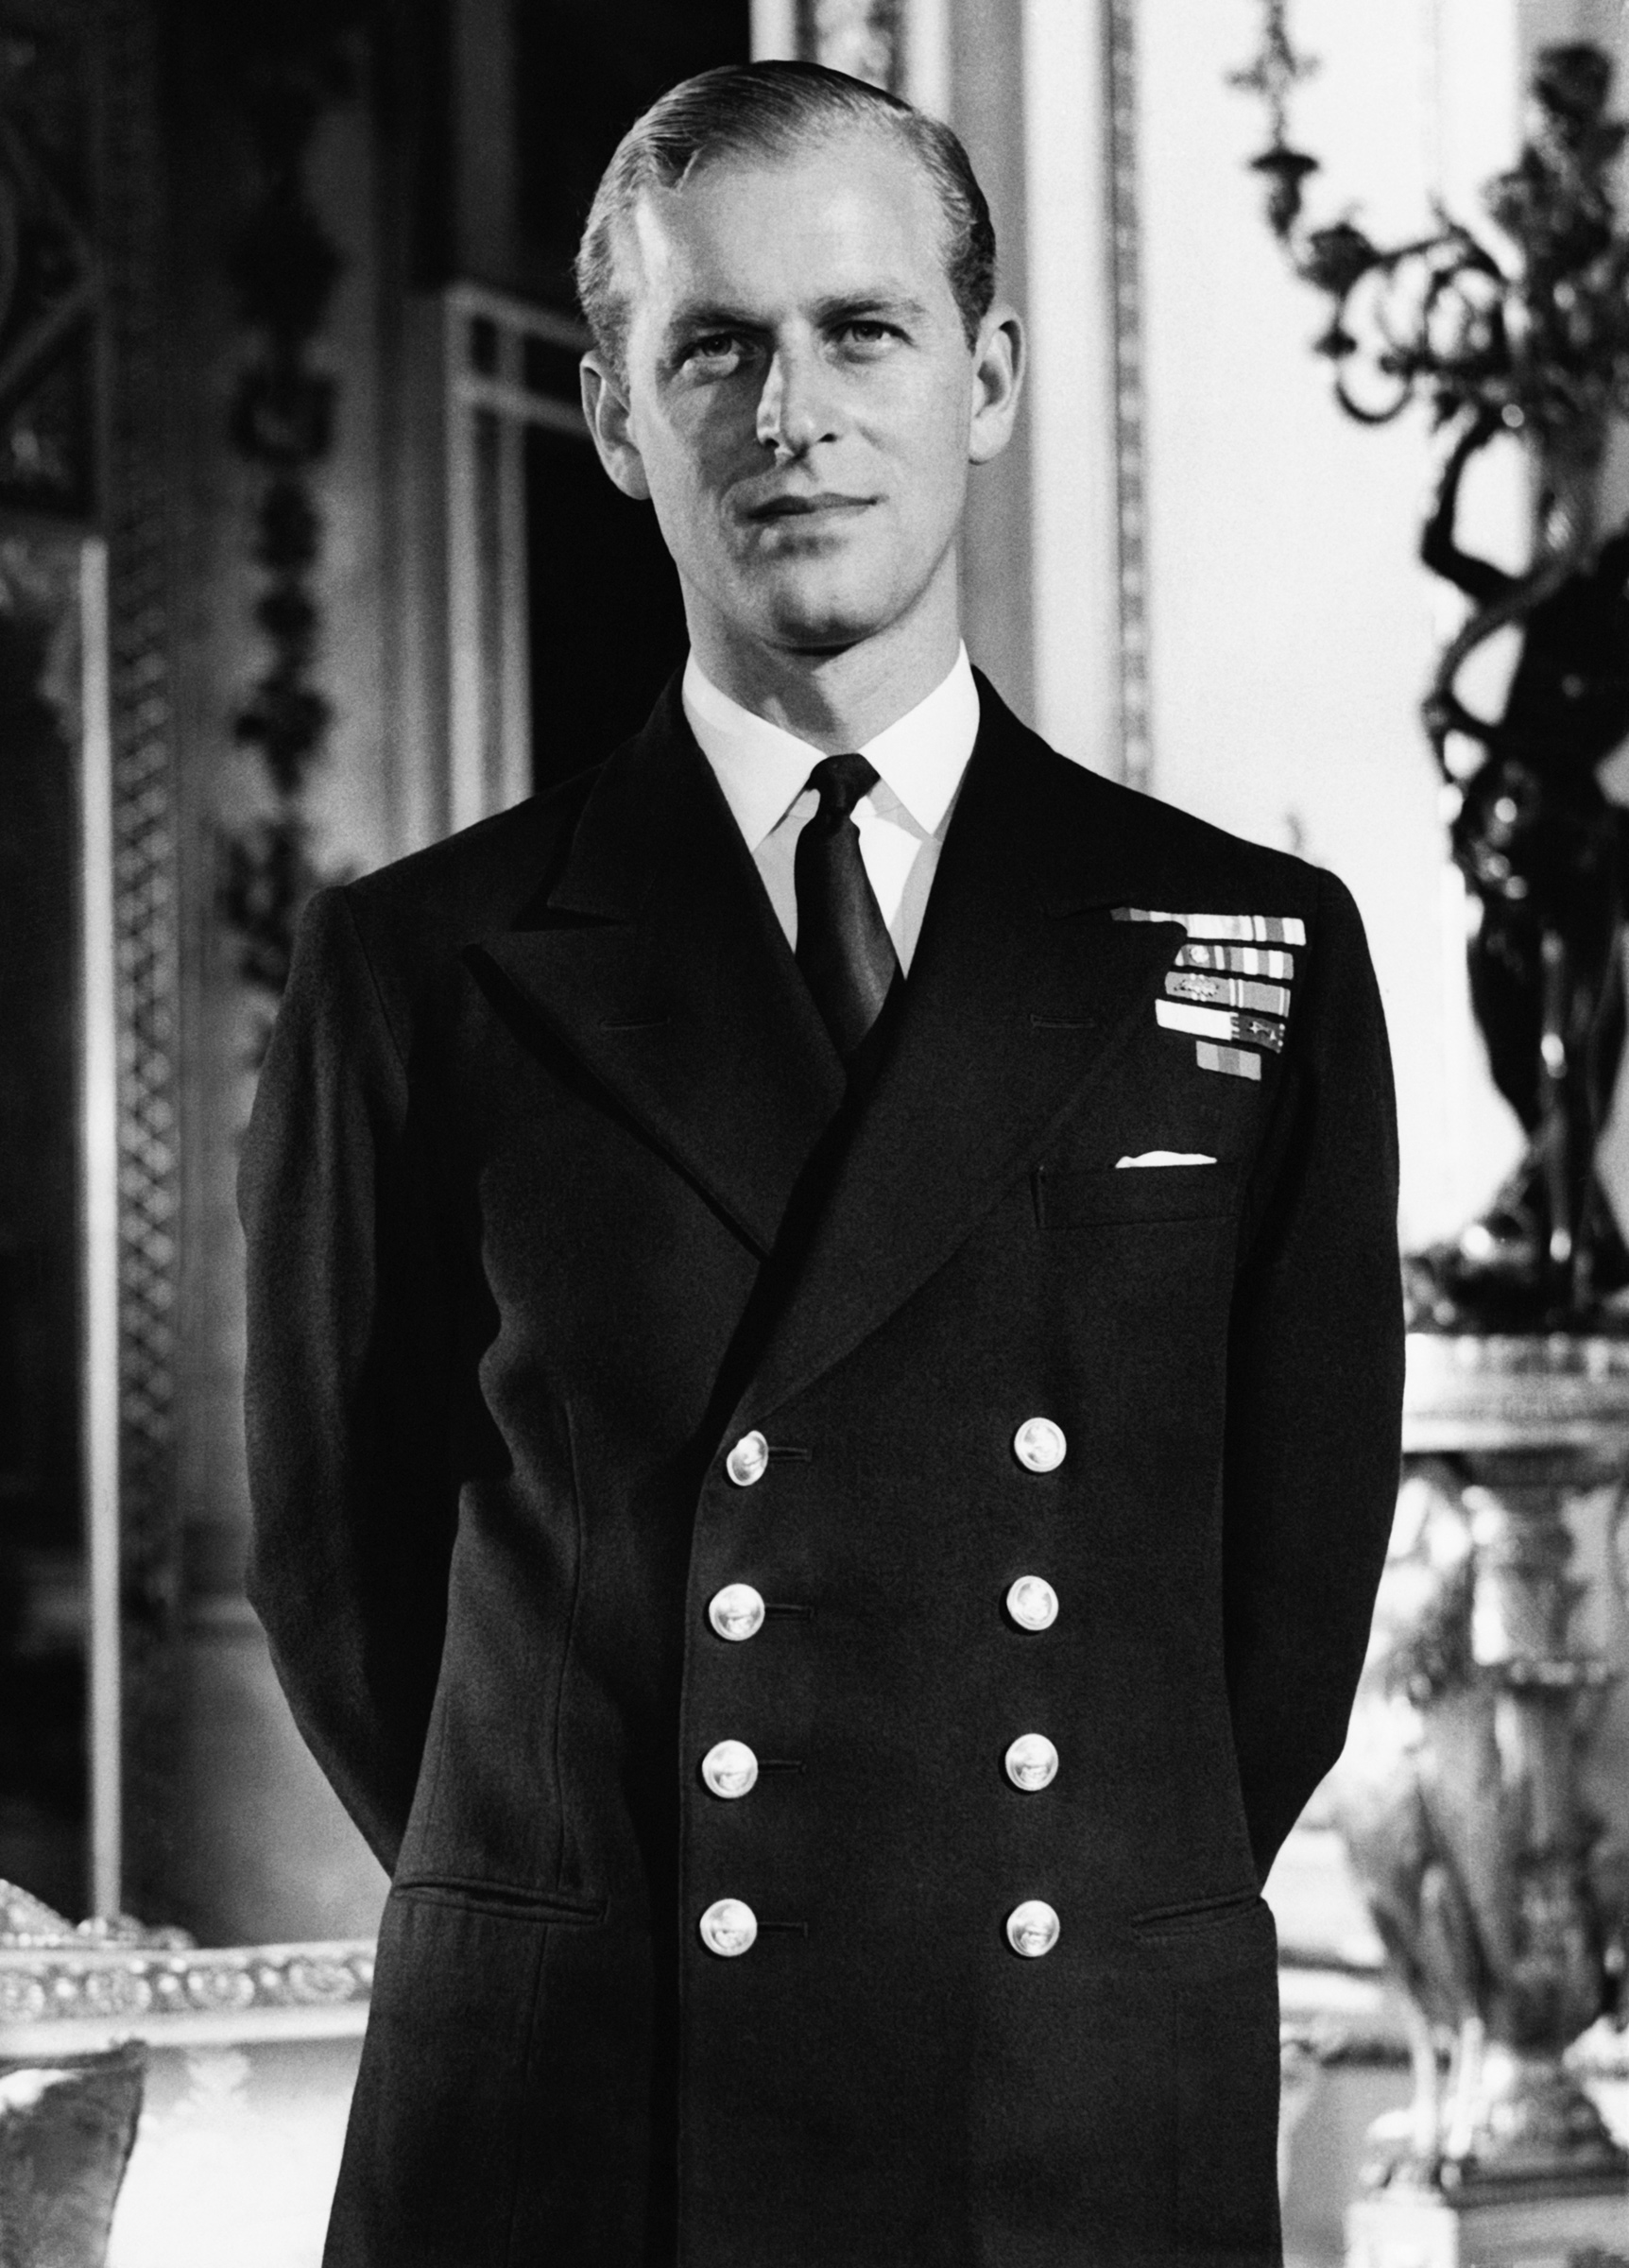 Philip Mountbatten in the White Drawing Room at Buckingham Palace in London, in October 1947.